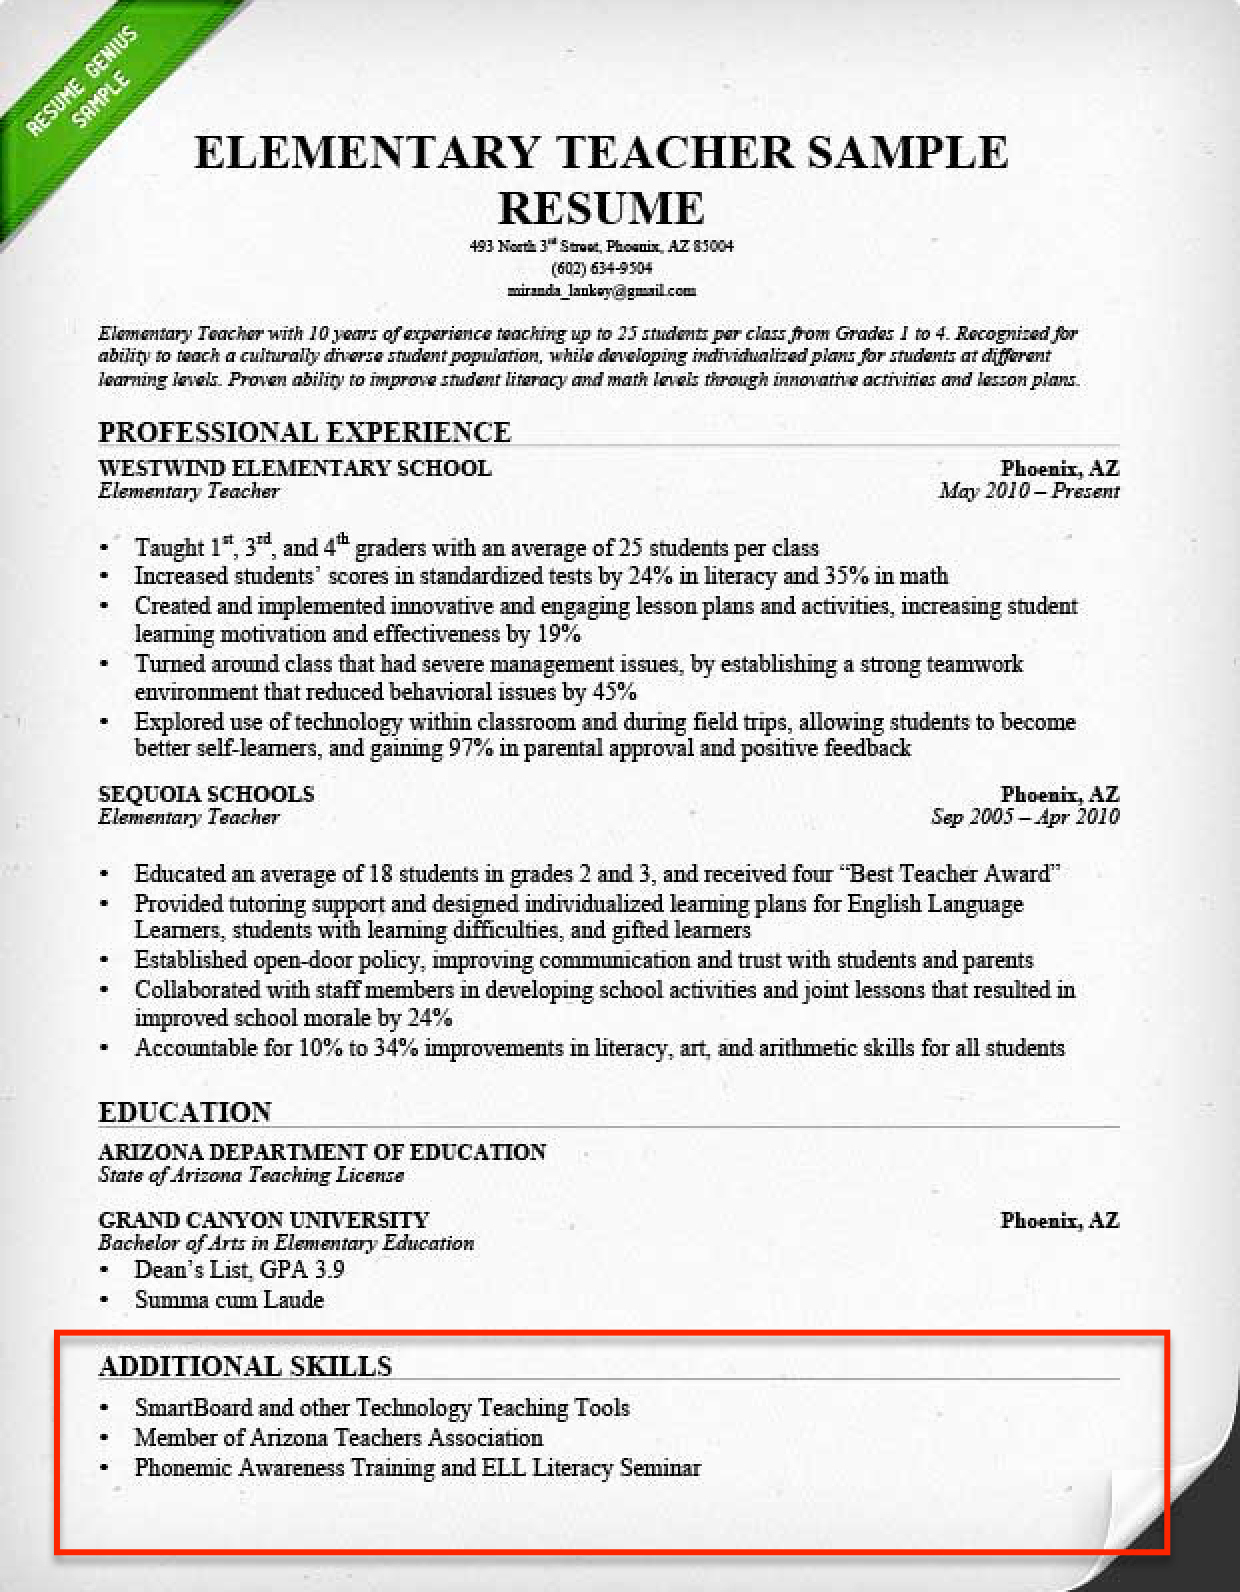 Resume Skills Section 250 Skills for Your Resume